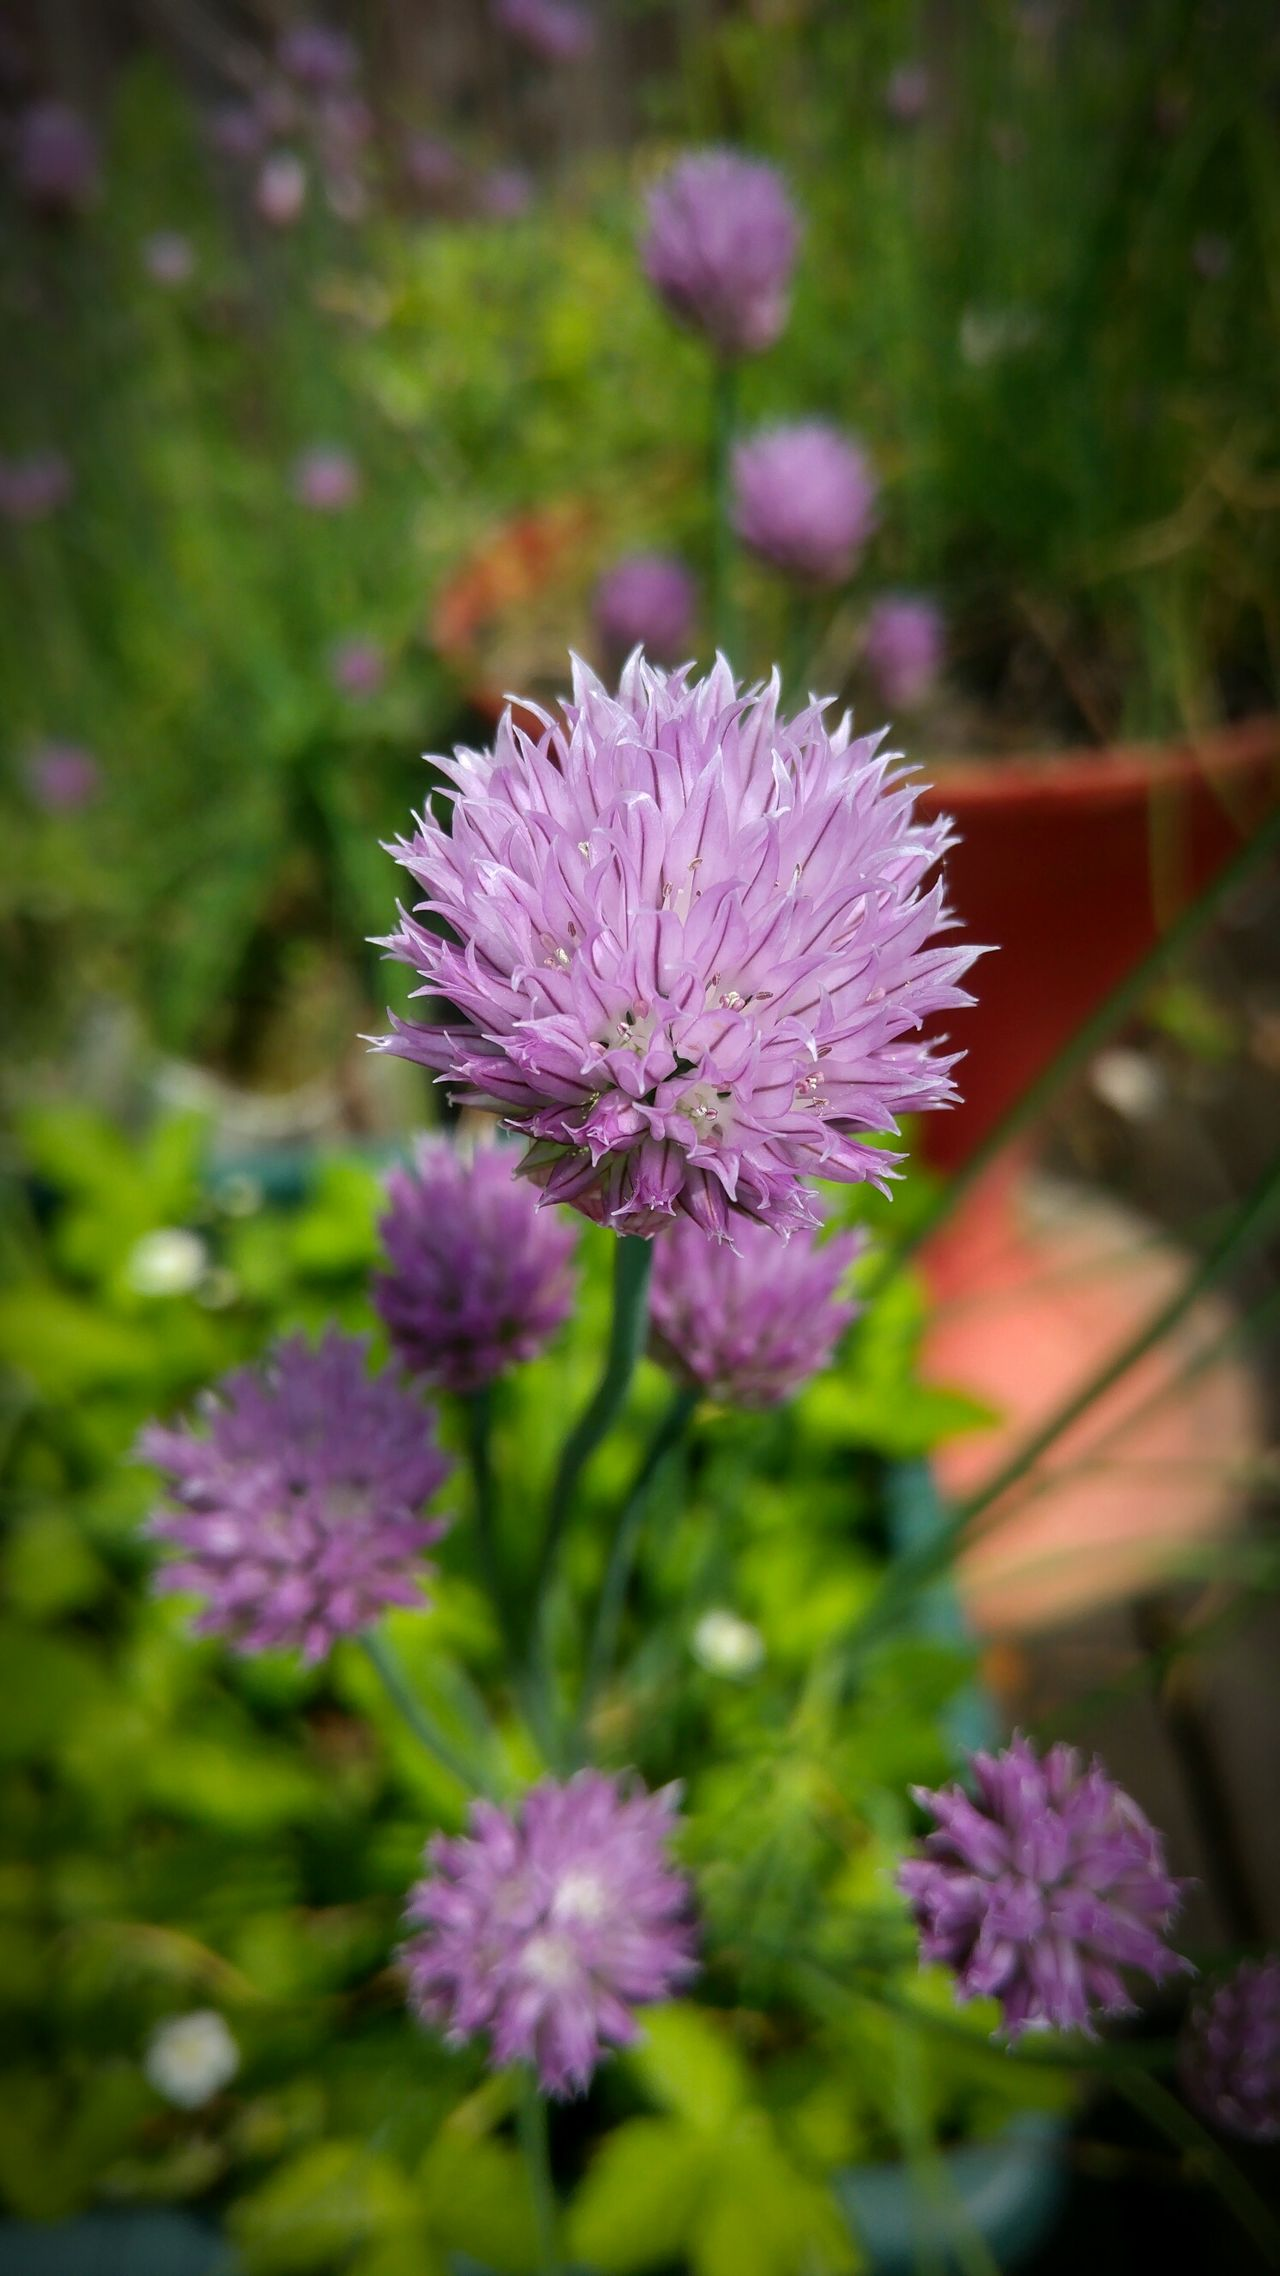 Schnittlauch Schnittlauch Blüte Chives Chiveflower Chiveeverywhere Chive Flower Chive Blossom Kräuter Kraeuter Kraeutergarten Herb Herbs Herb Garden Essbare Blüten🌾 Edible Flowers Edible Plants Edibleflowers Ediblegarden Blüte Blüten Plants Plants And Flowers